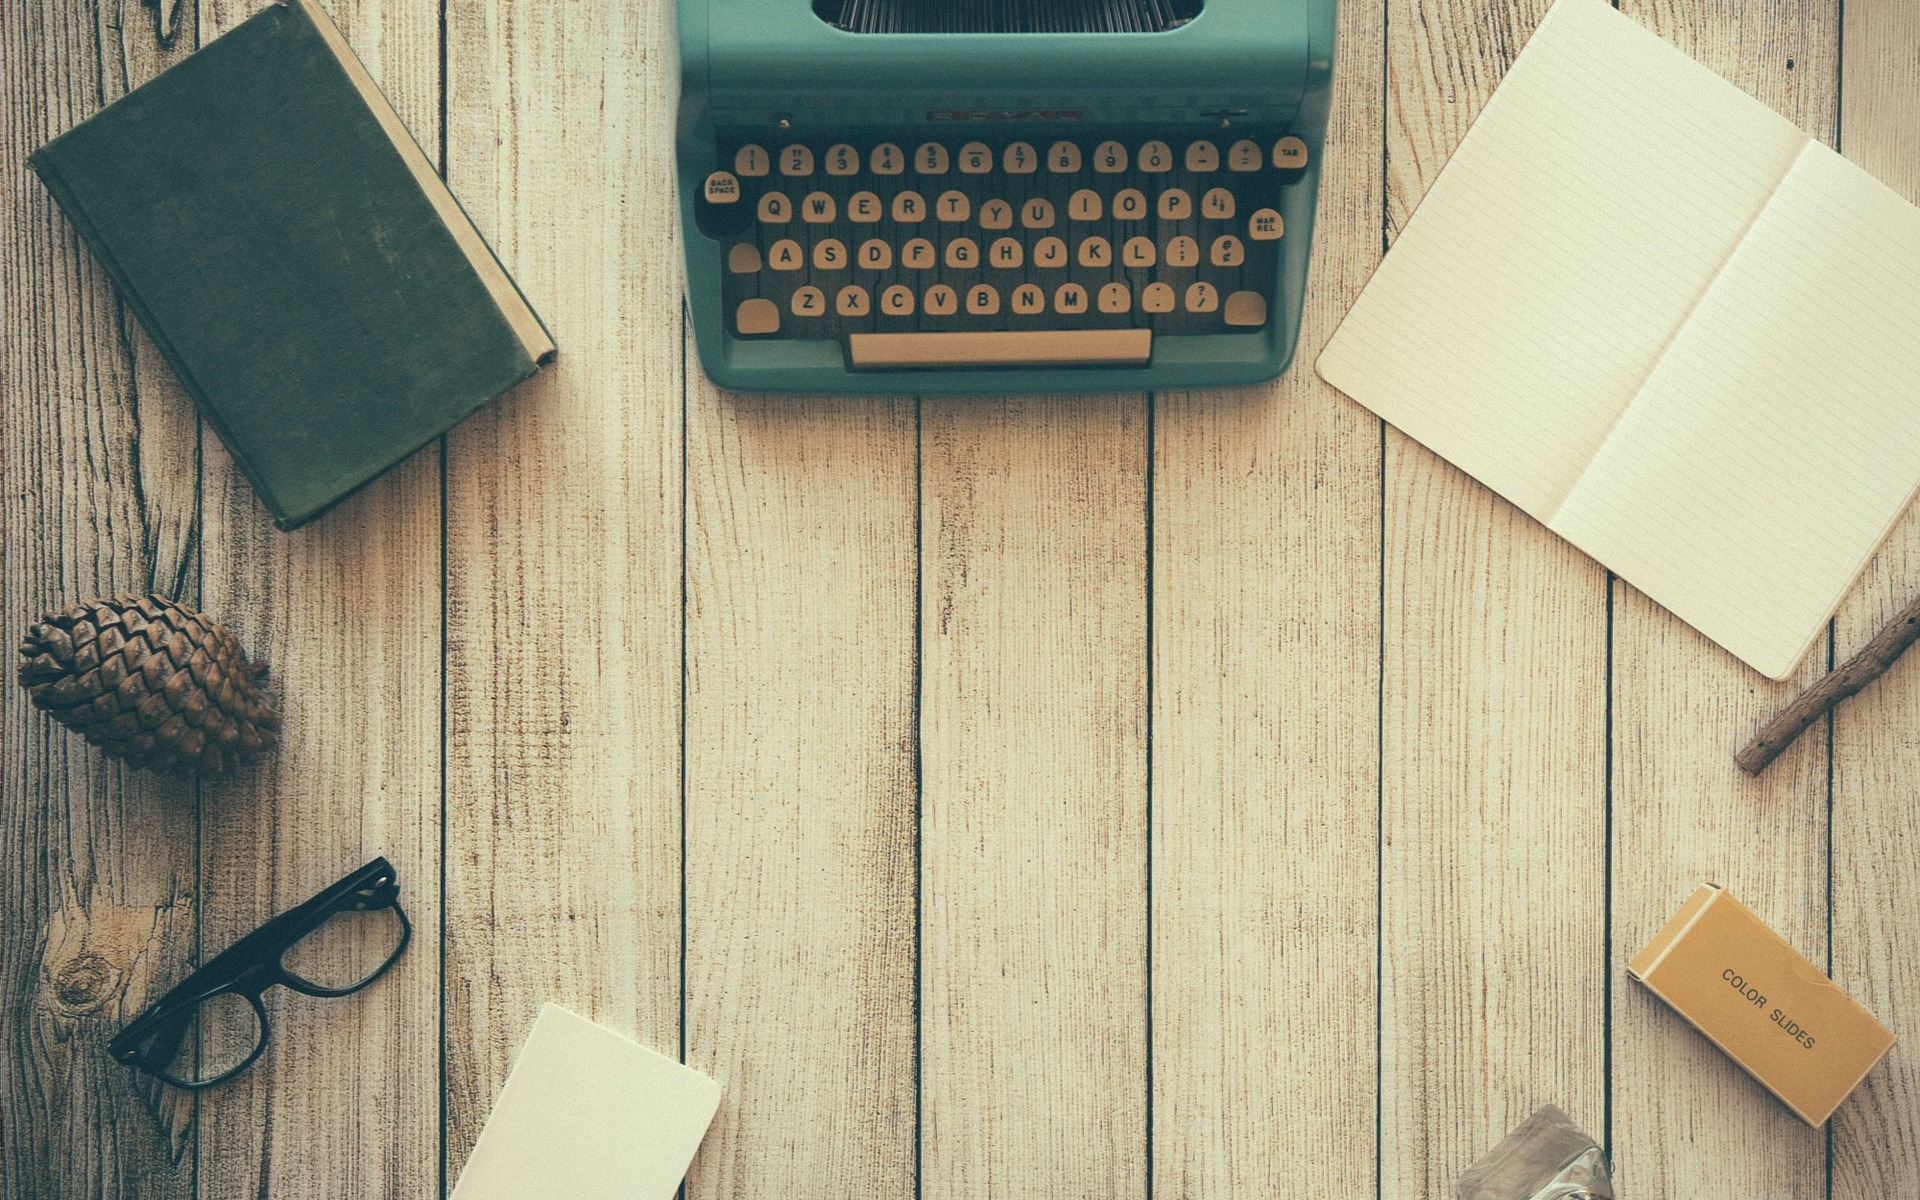 vintage typewriter desktop | the lonely tribalist